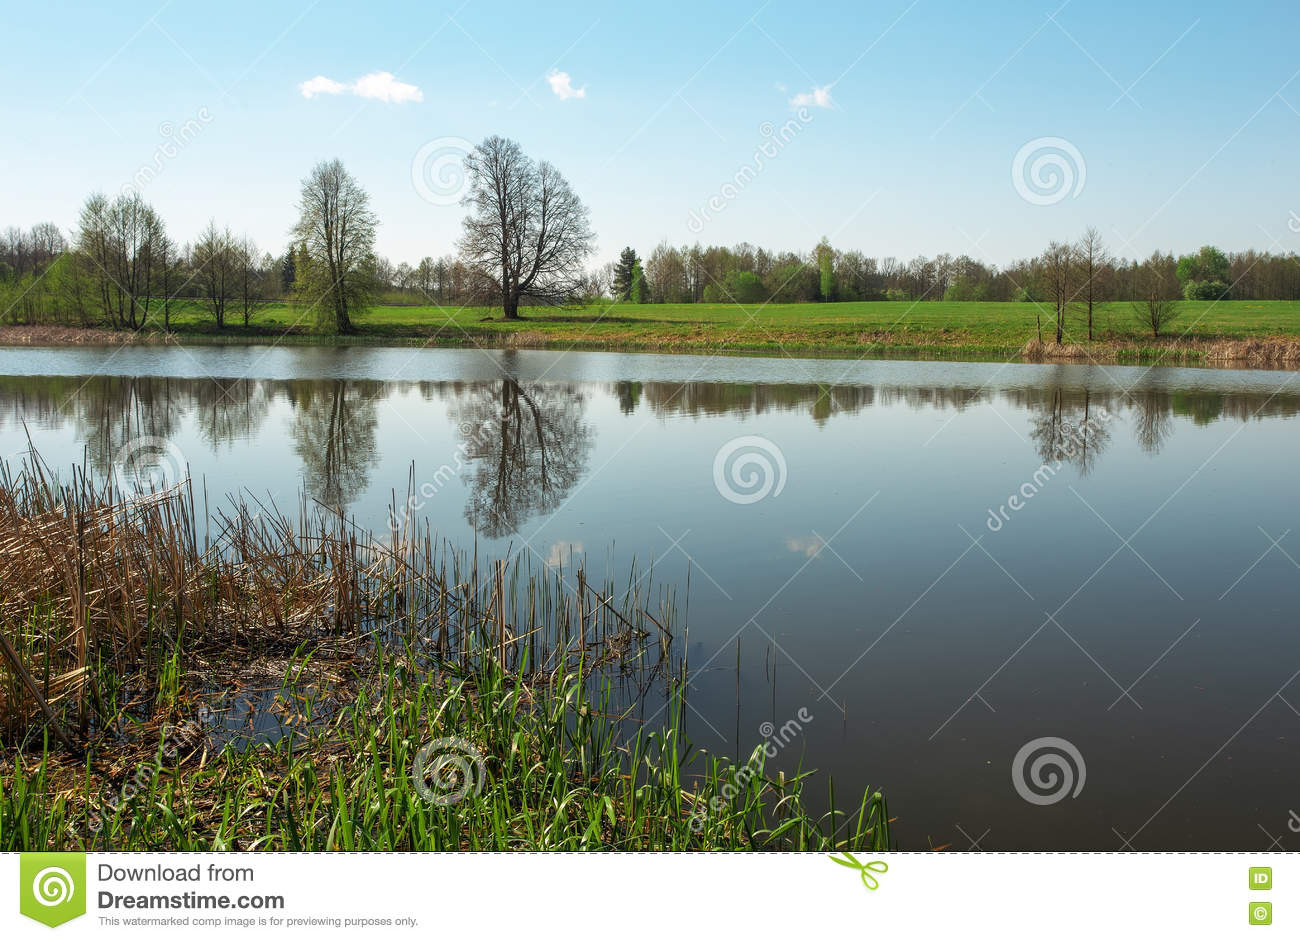 Landscape Boulders Spokane : River with blue sky and trees royalty free stock image